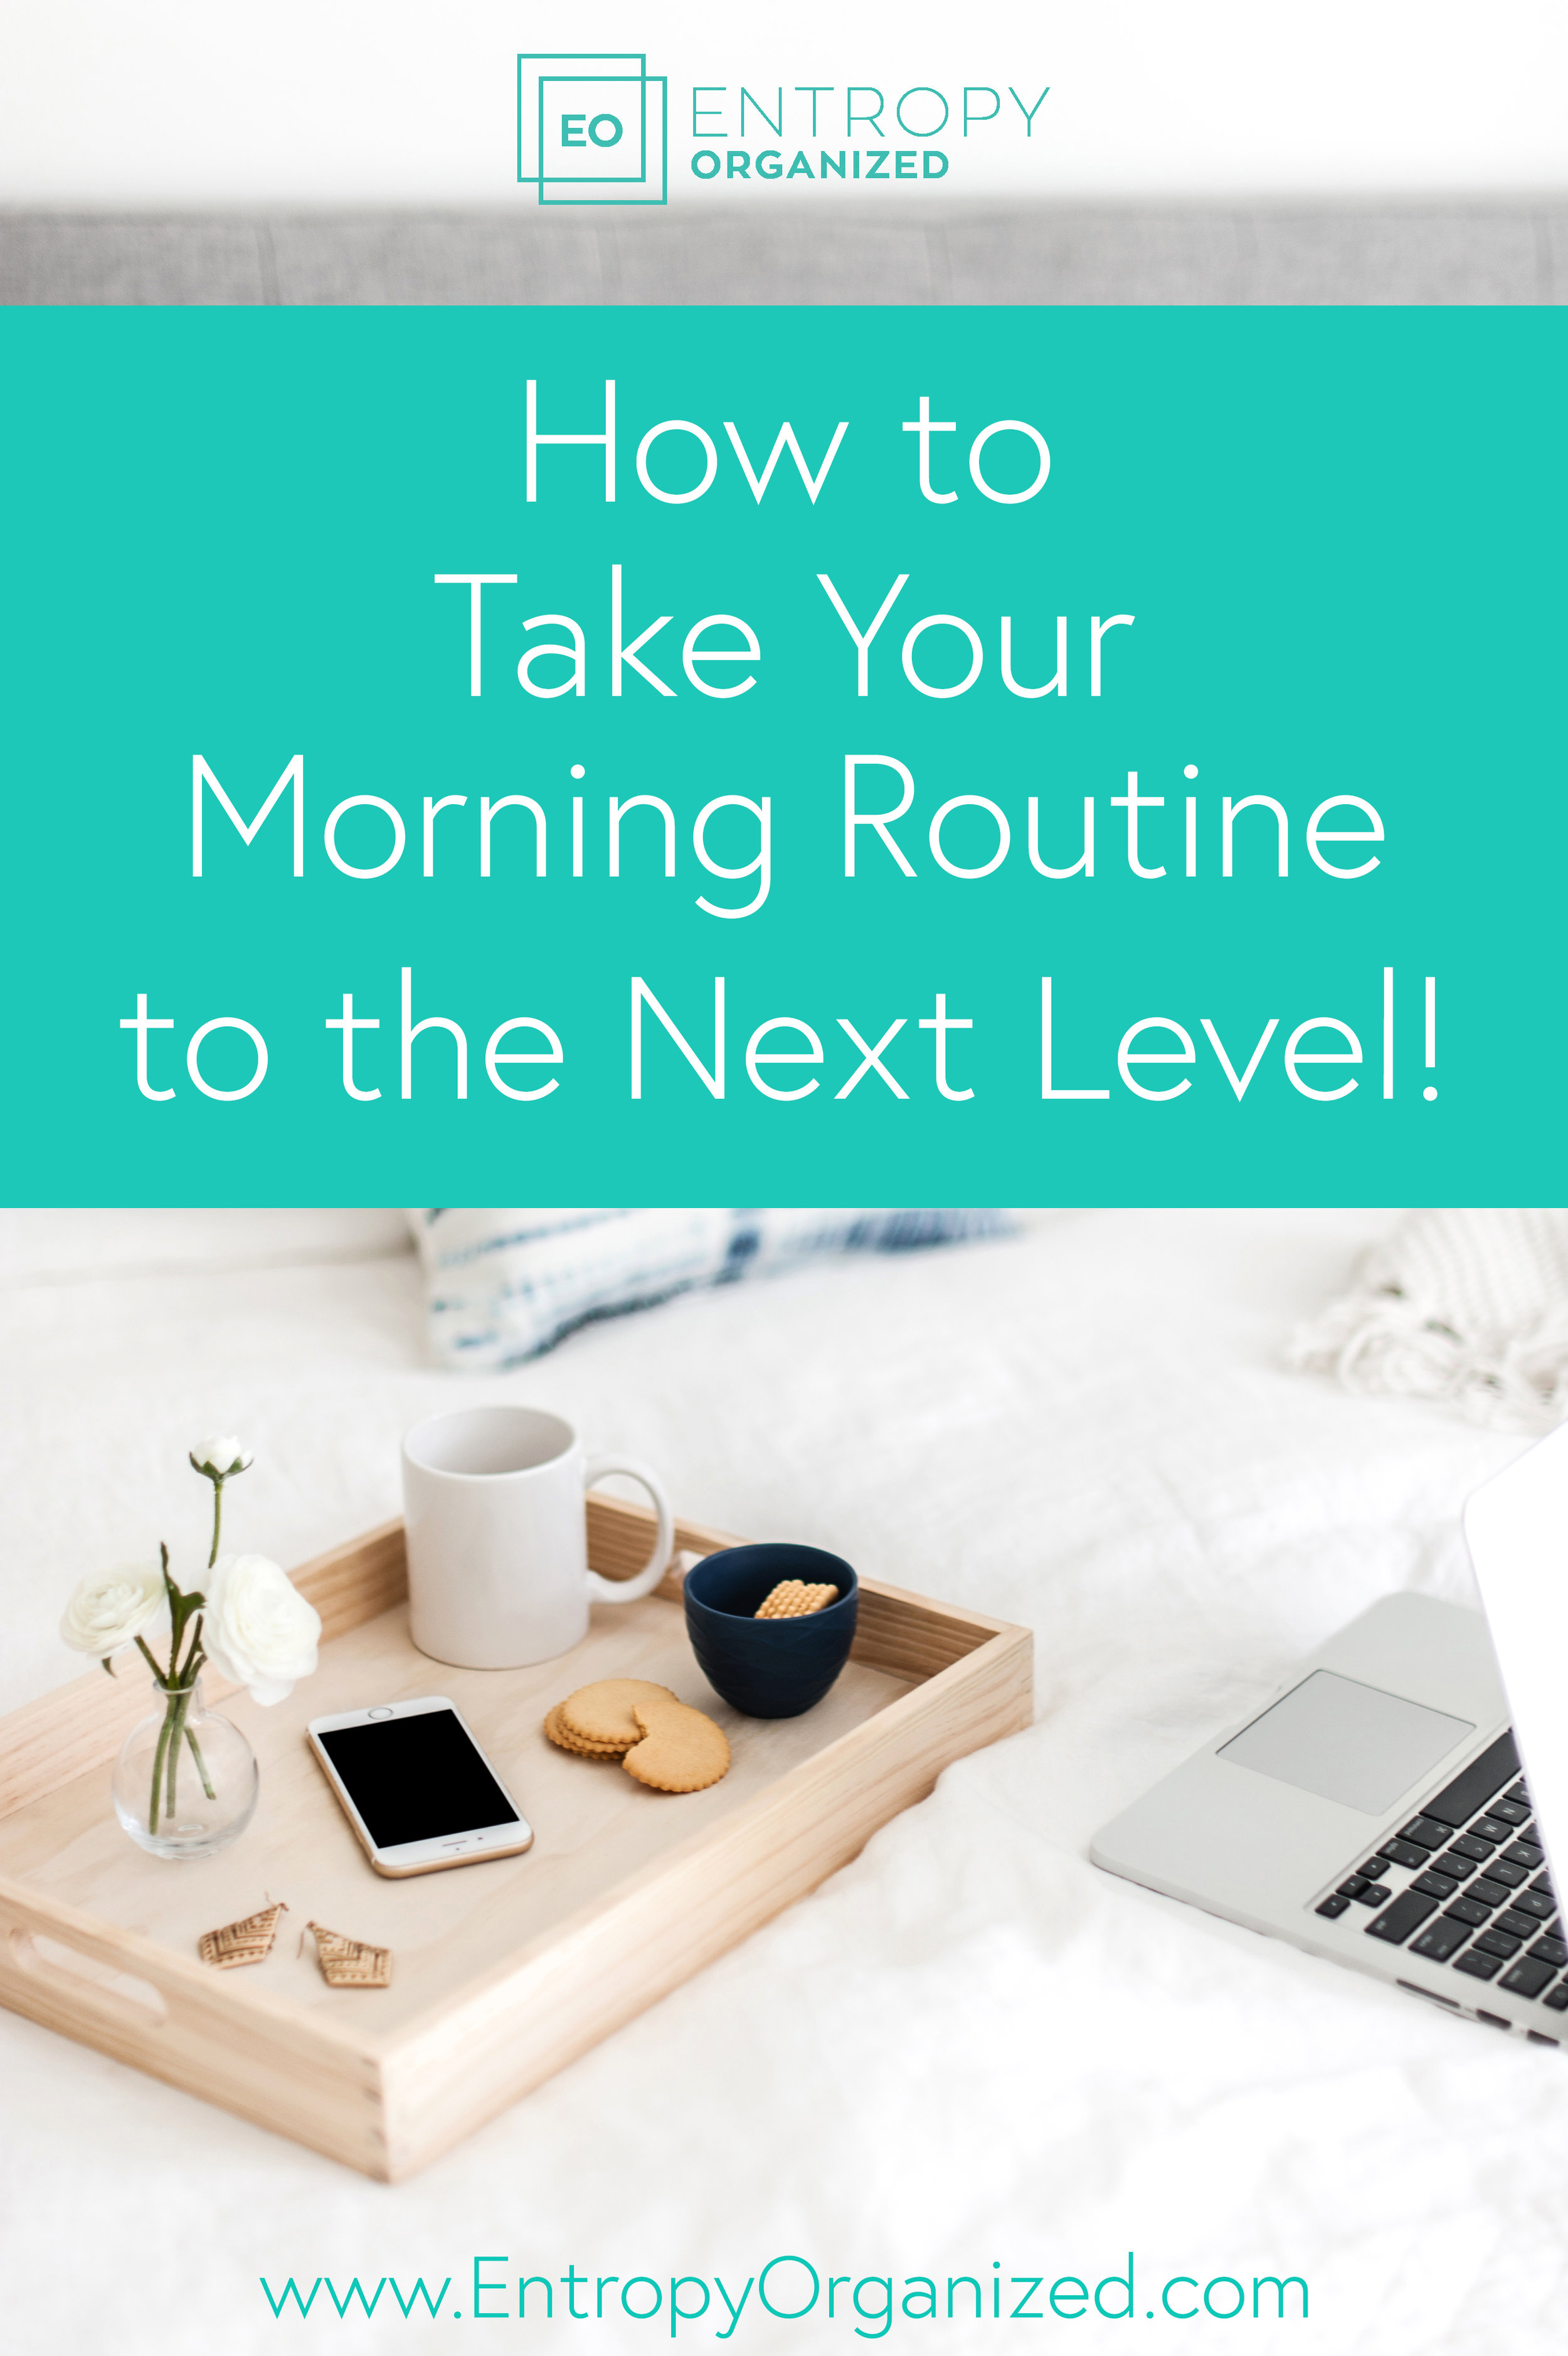 How to Take Your Morning Routine to the Next Level